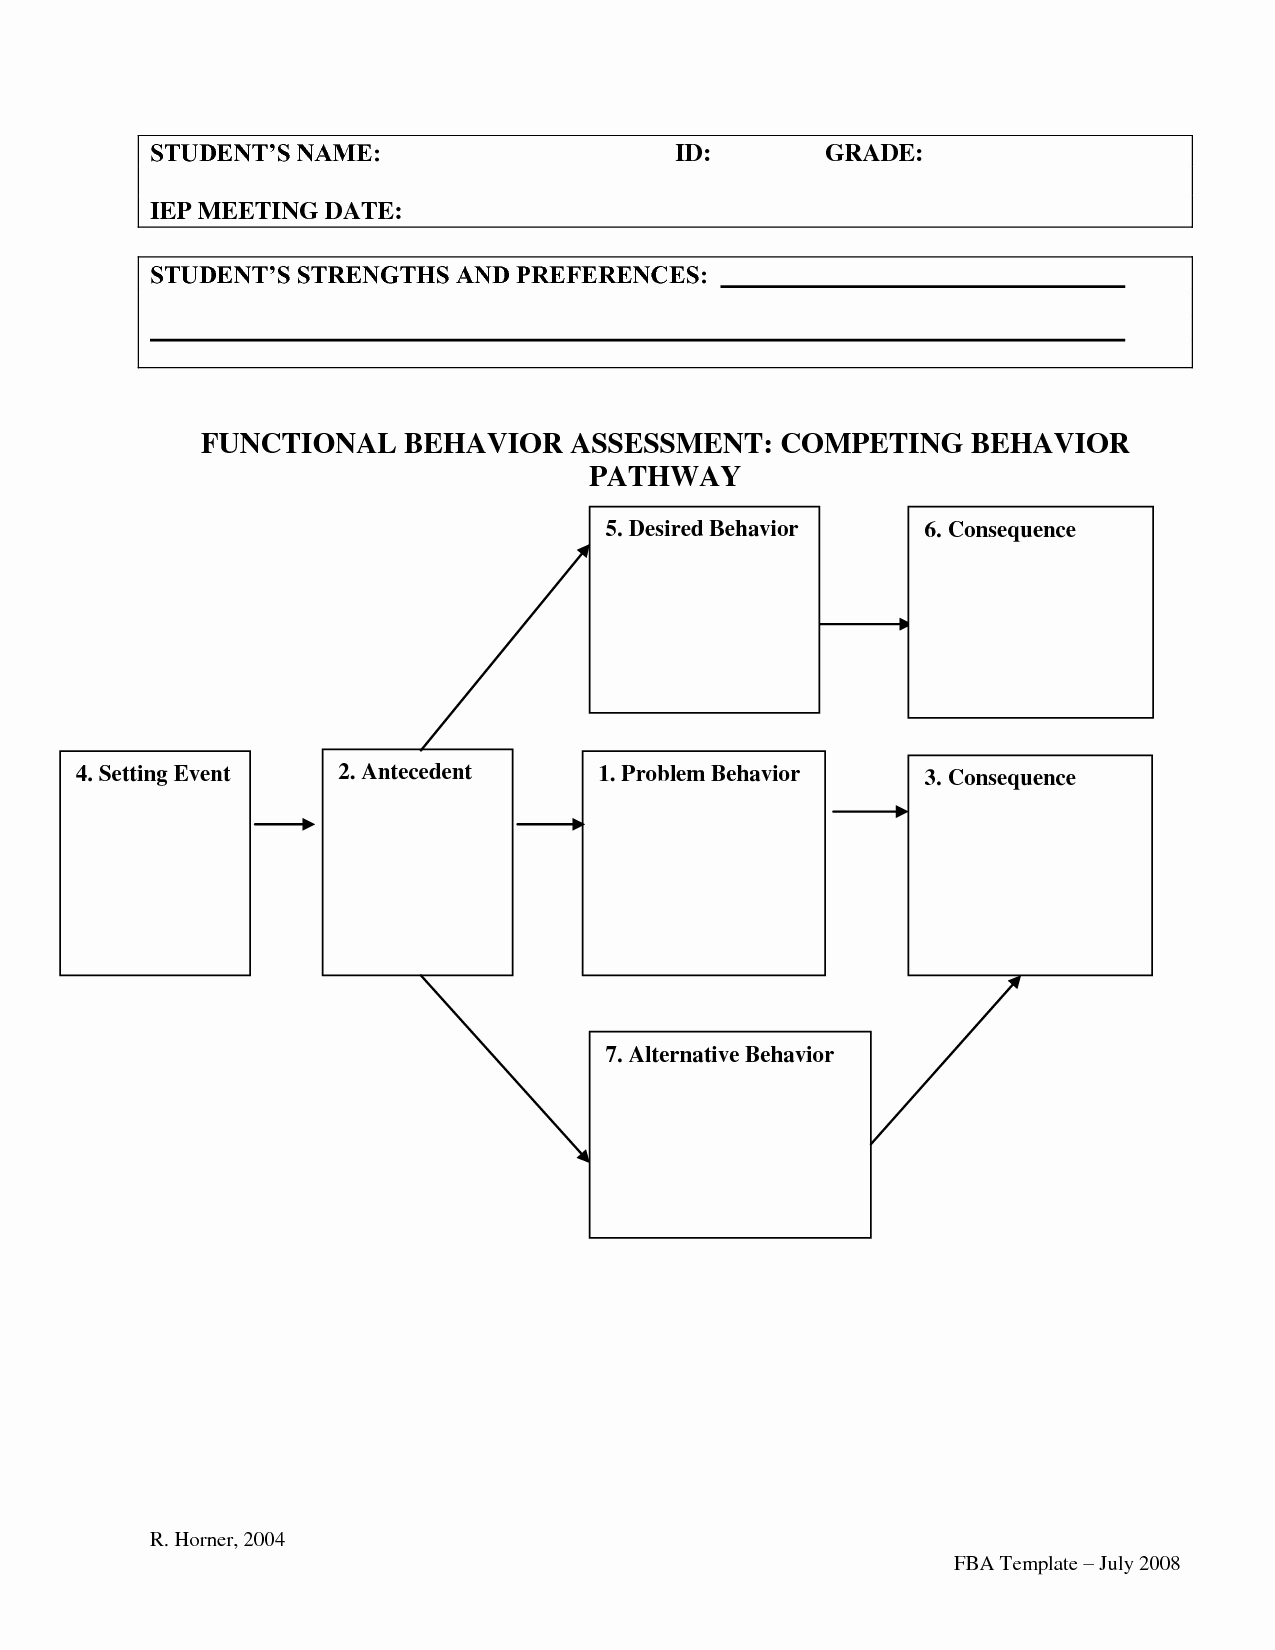 Behavior Support Plan Template Fresh Fba Templates Yahoo Image Search Results